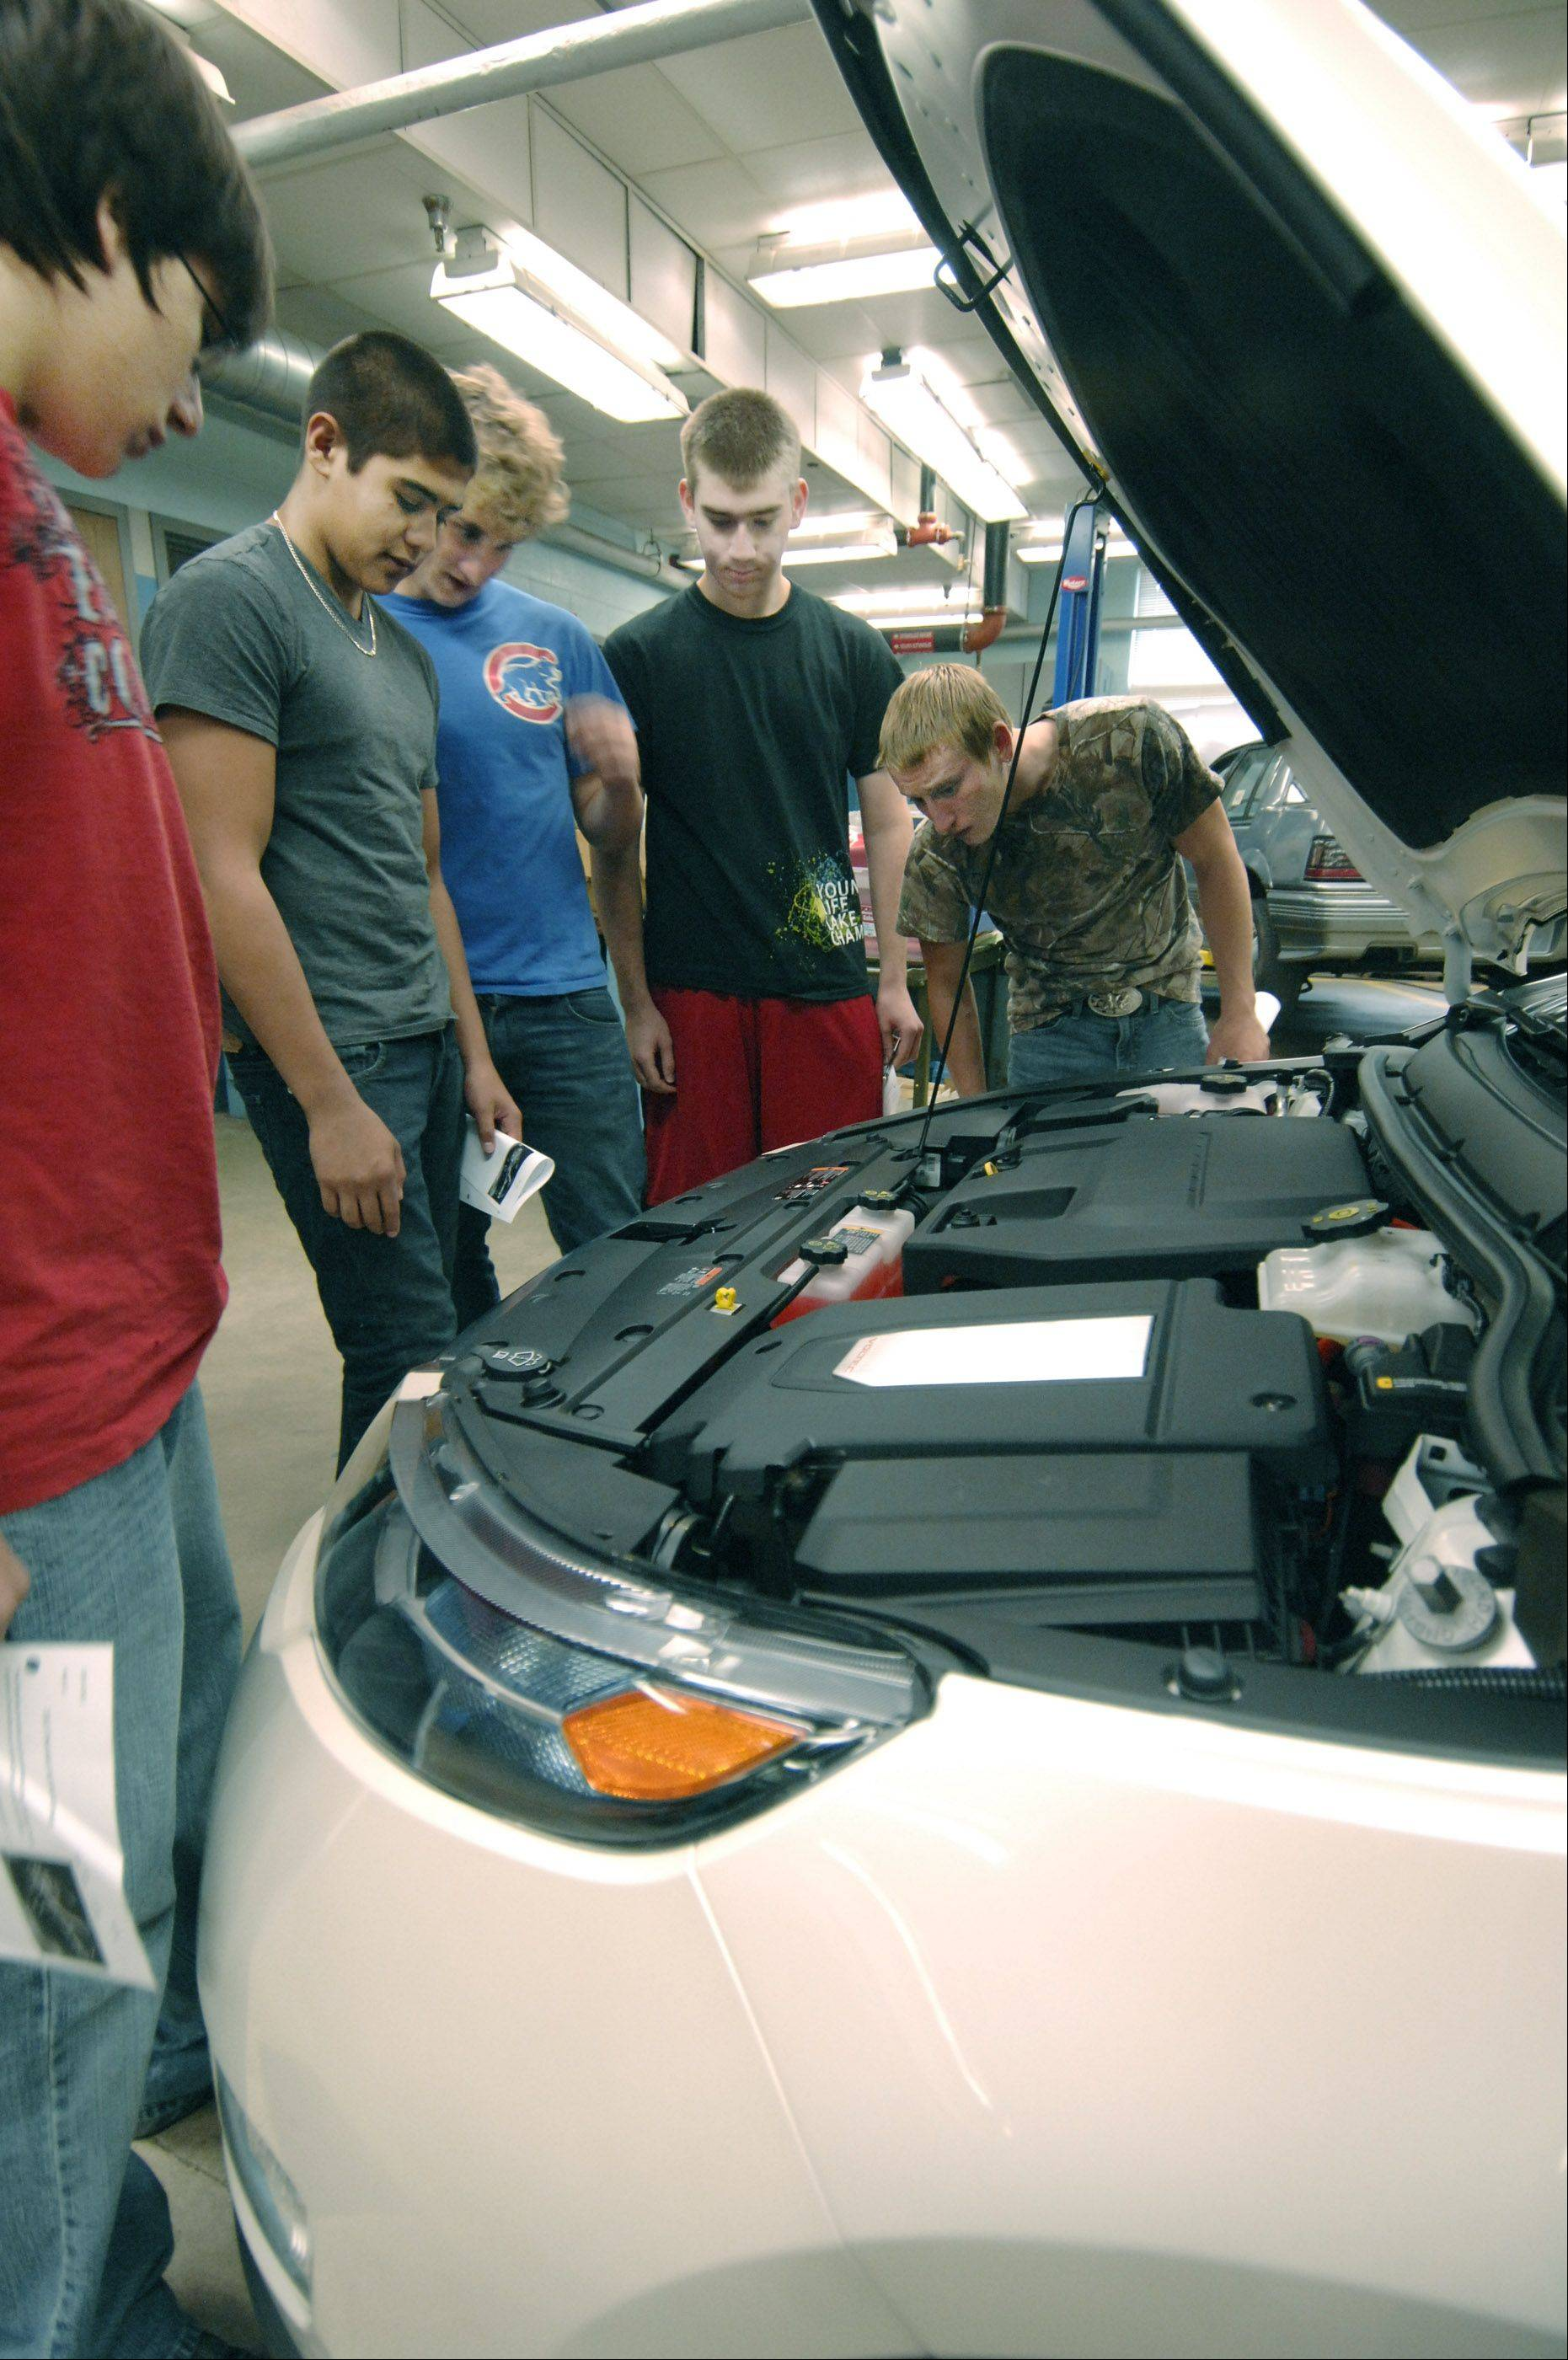 Students in an automotive technology class at Willowbrook High School in Villa Park examine the engine and motor compartment in a Chevy Volt electric car.